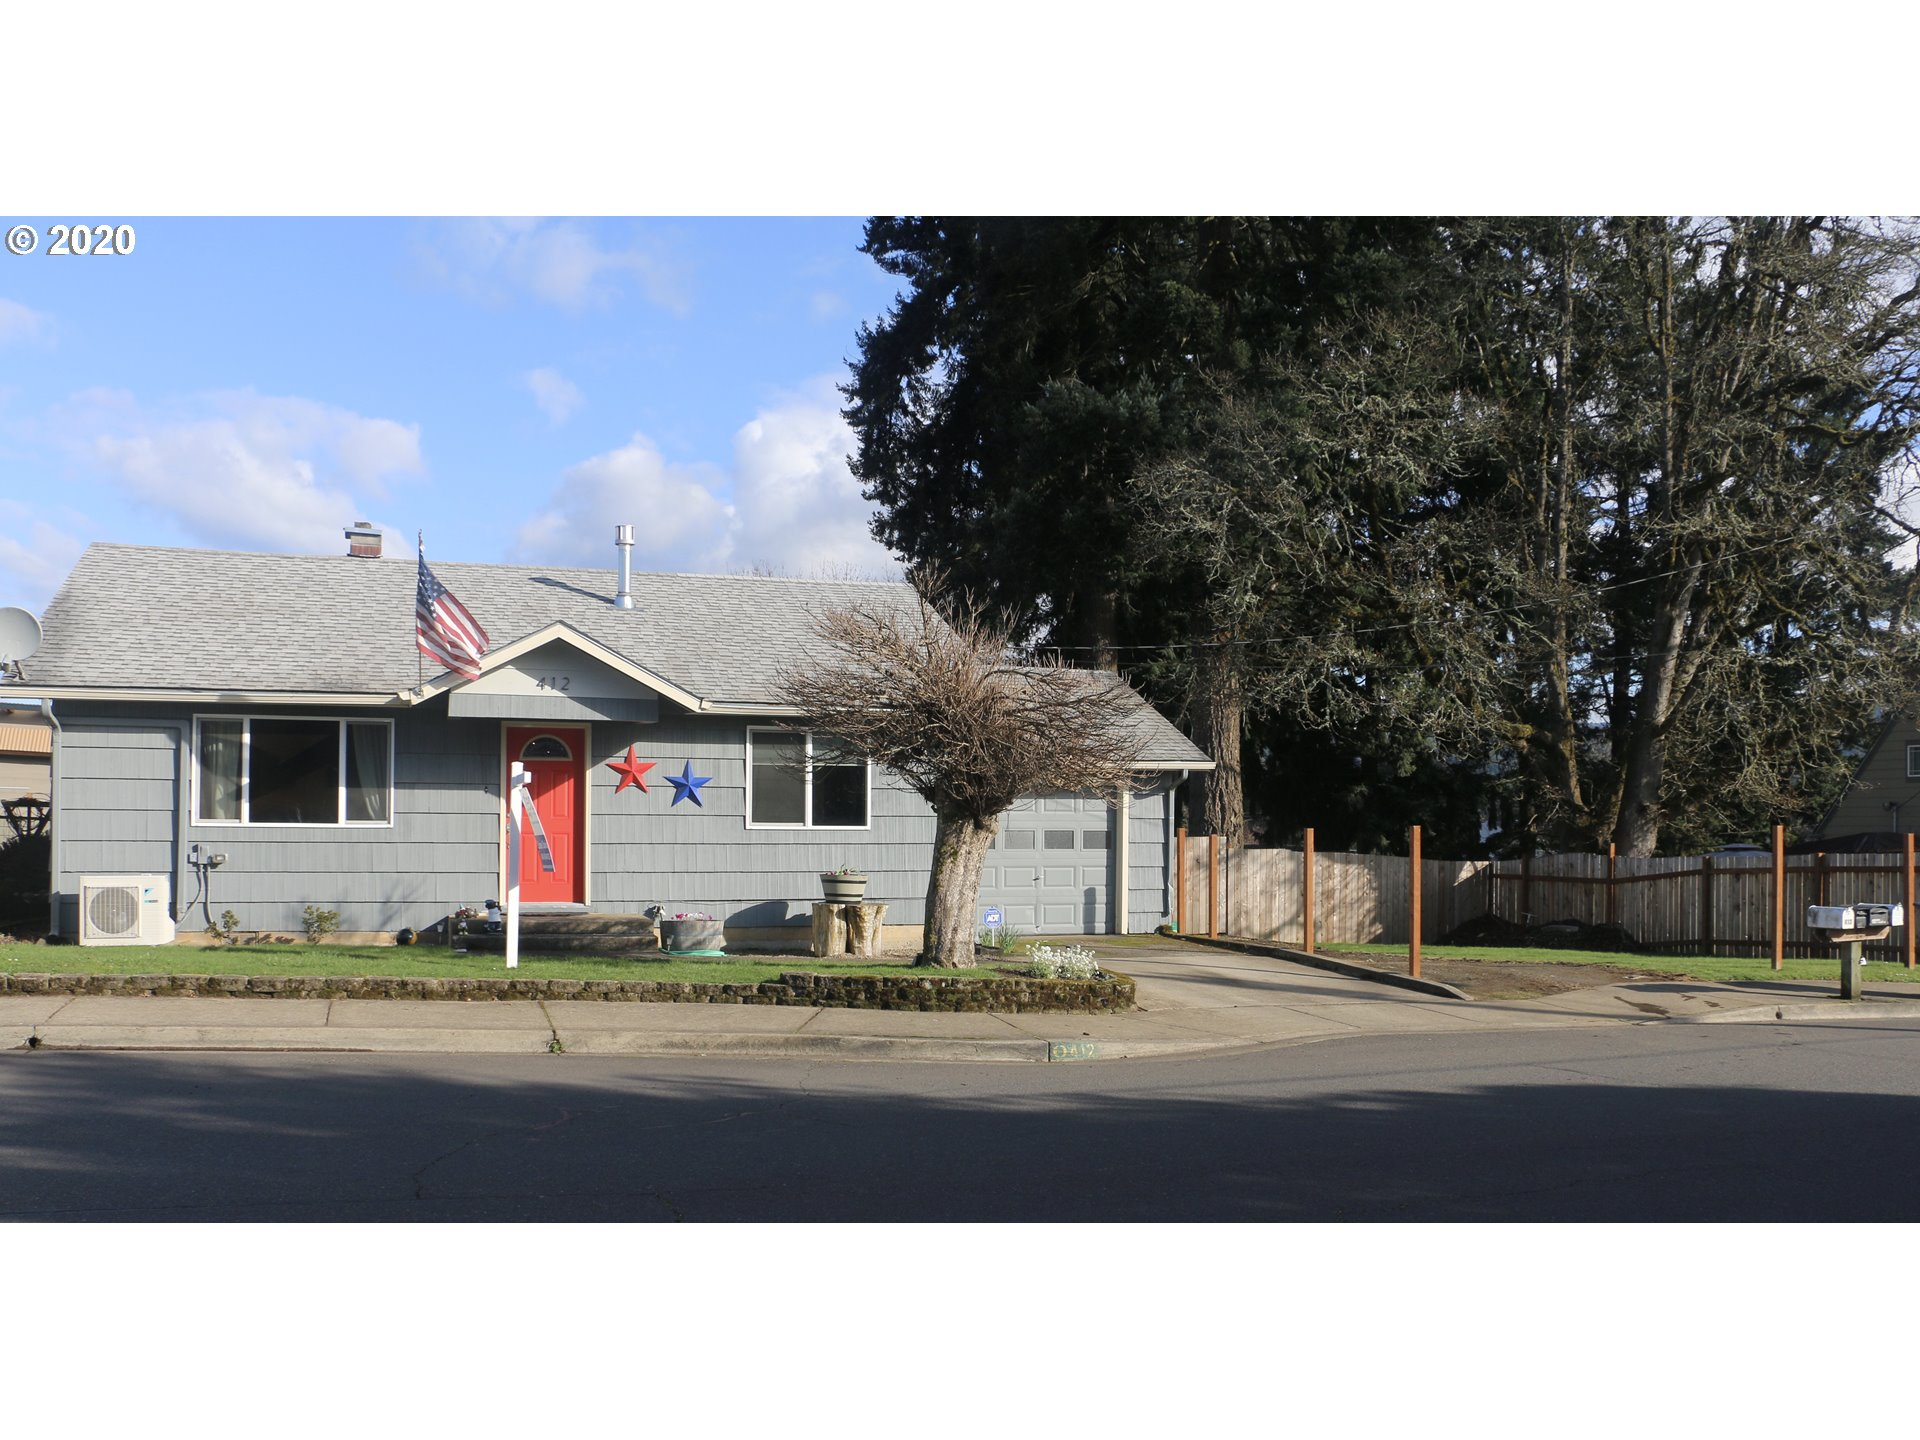 412 N 1ST ST, Creswell OR 97426